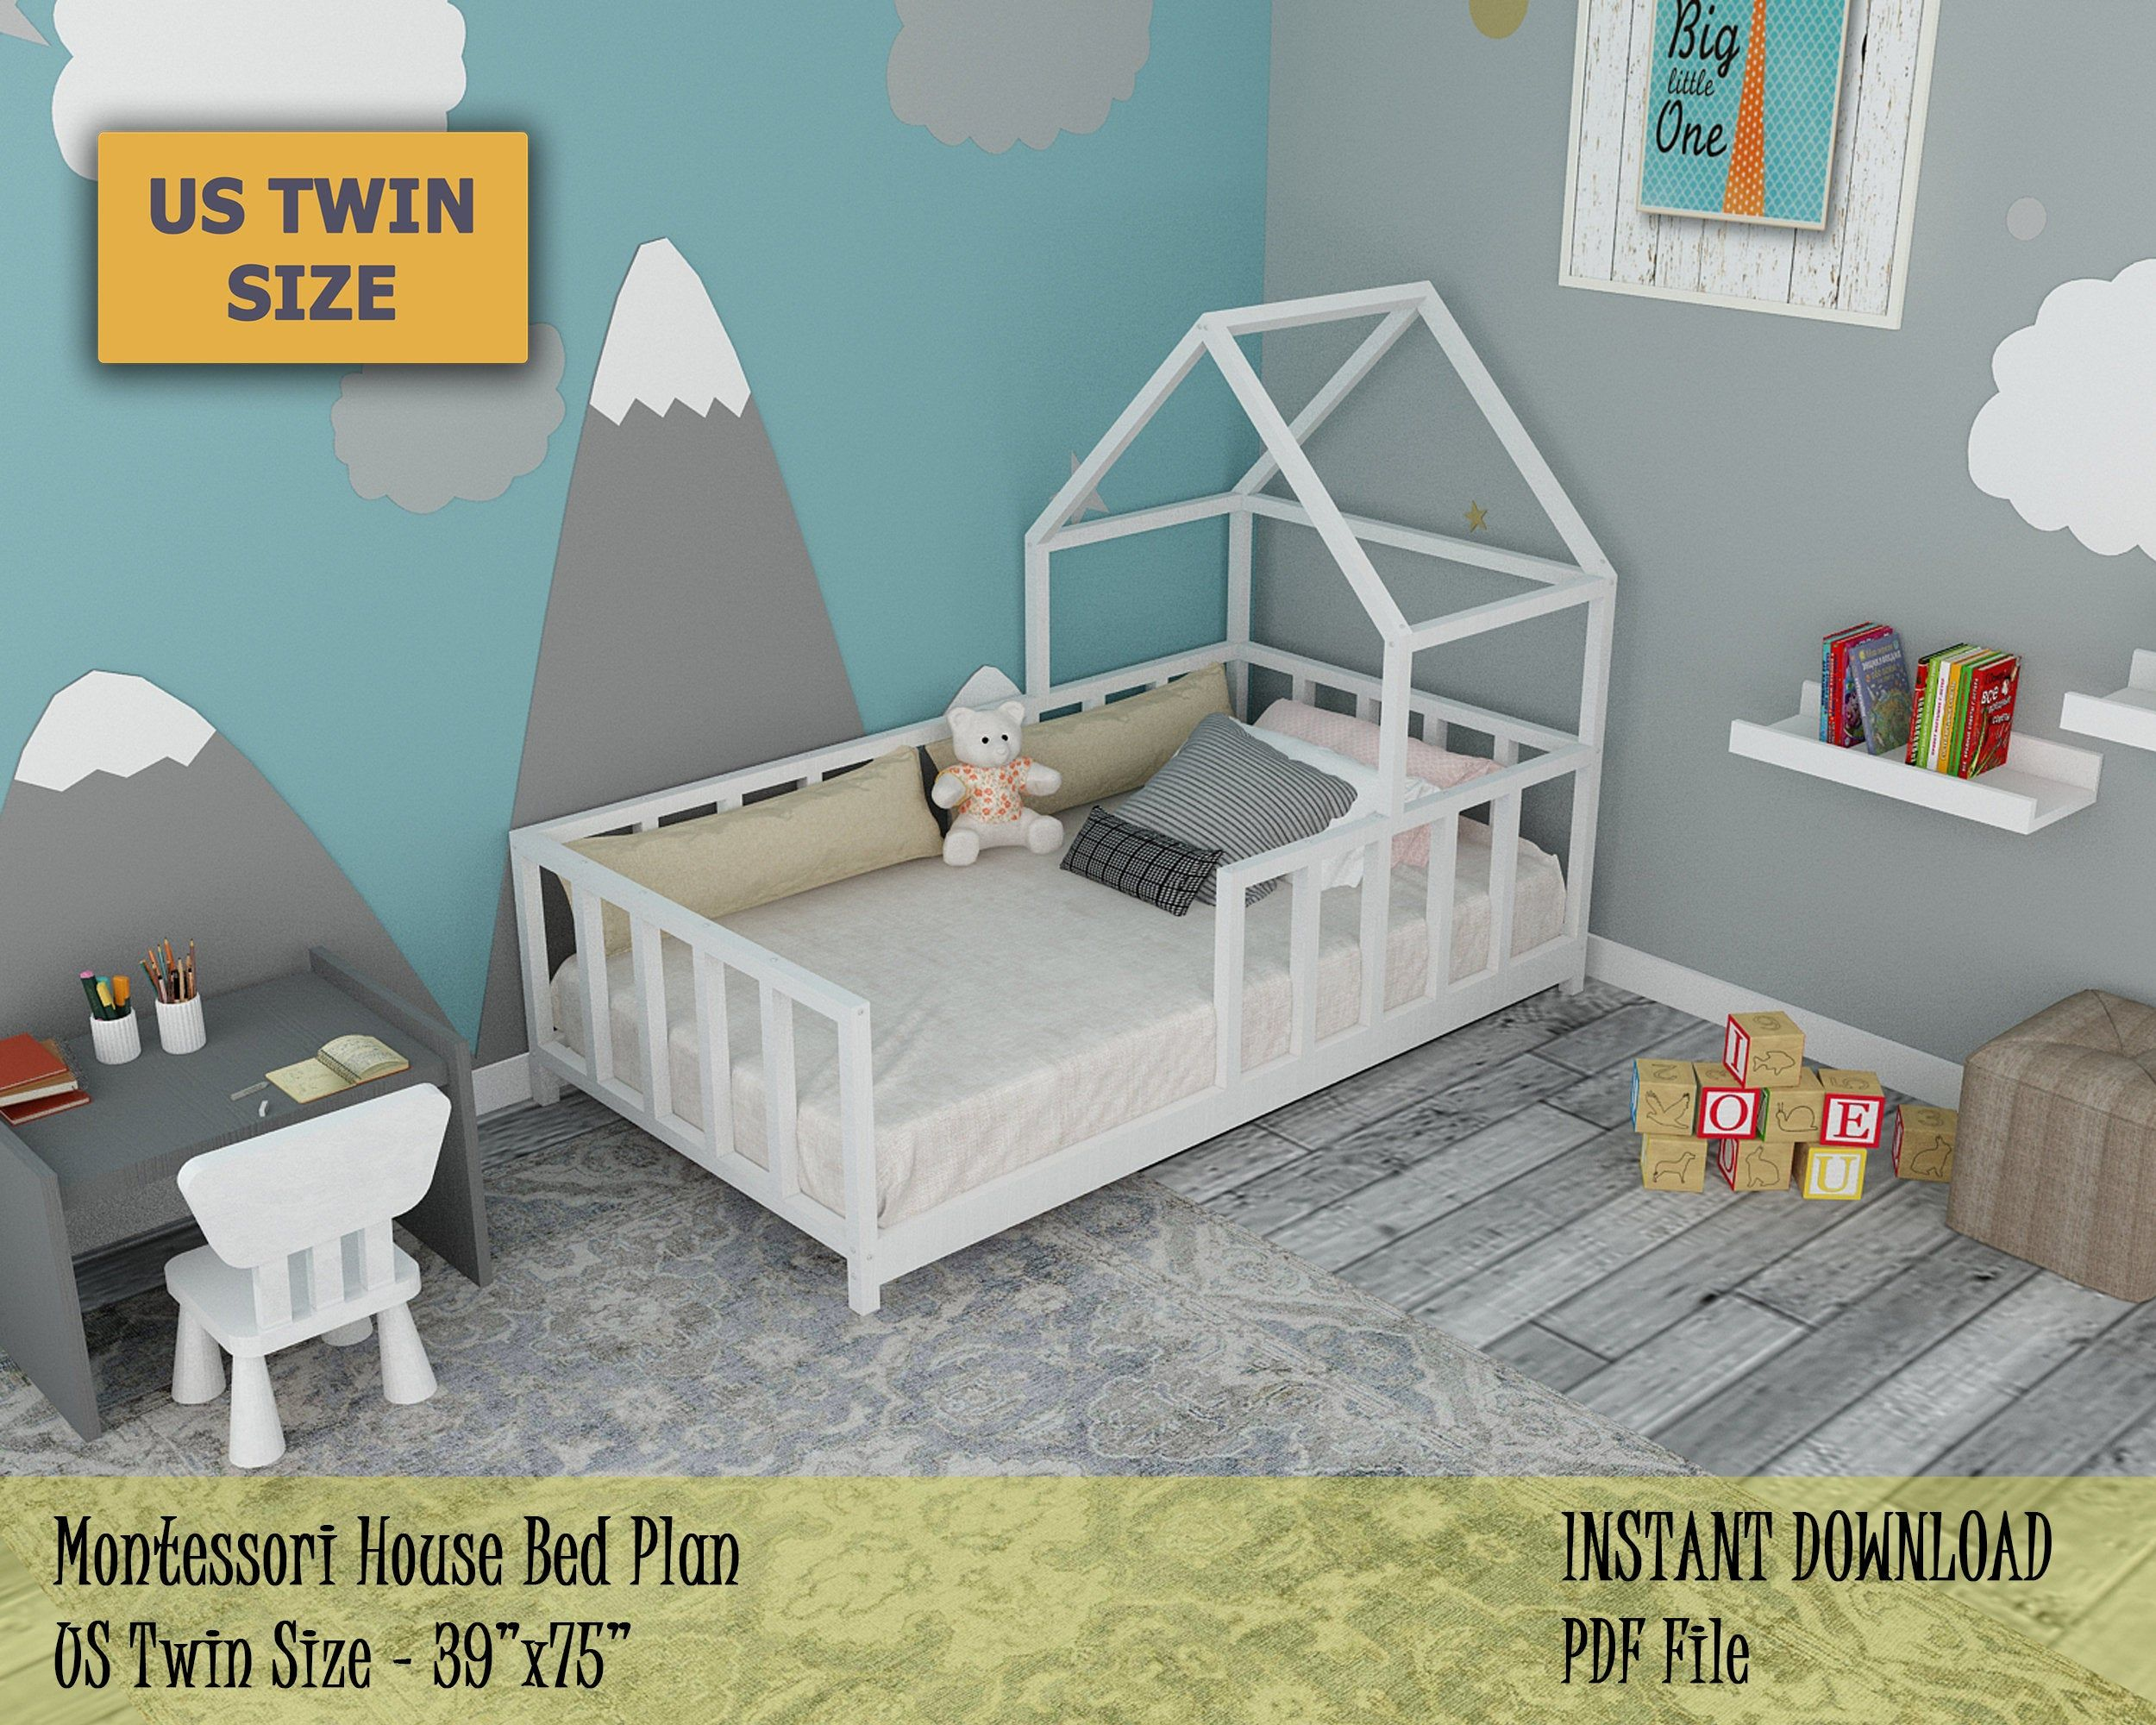 Montessori House Bed Plan Toddler Twin Bed Frame Wooden Bed Frame Easy And Affordable Diy Toddler Floor Bed For Kids Bedroom In 2020 Toddler Twin Bed Toddler Floor Bed Diy Toddler Bed